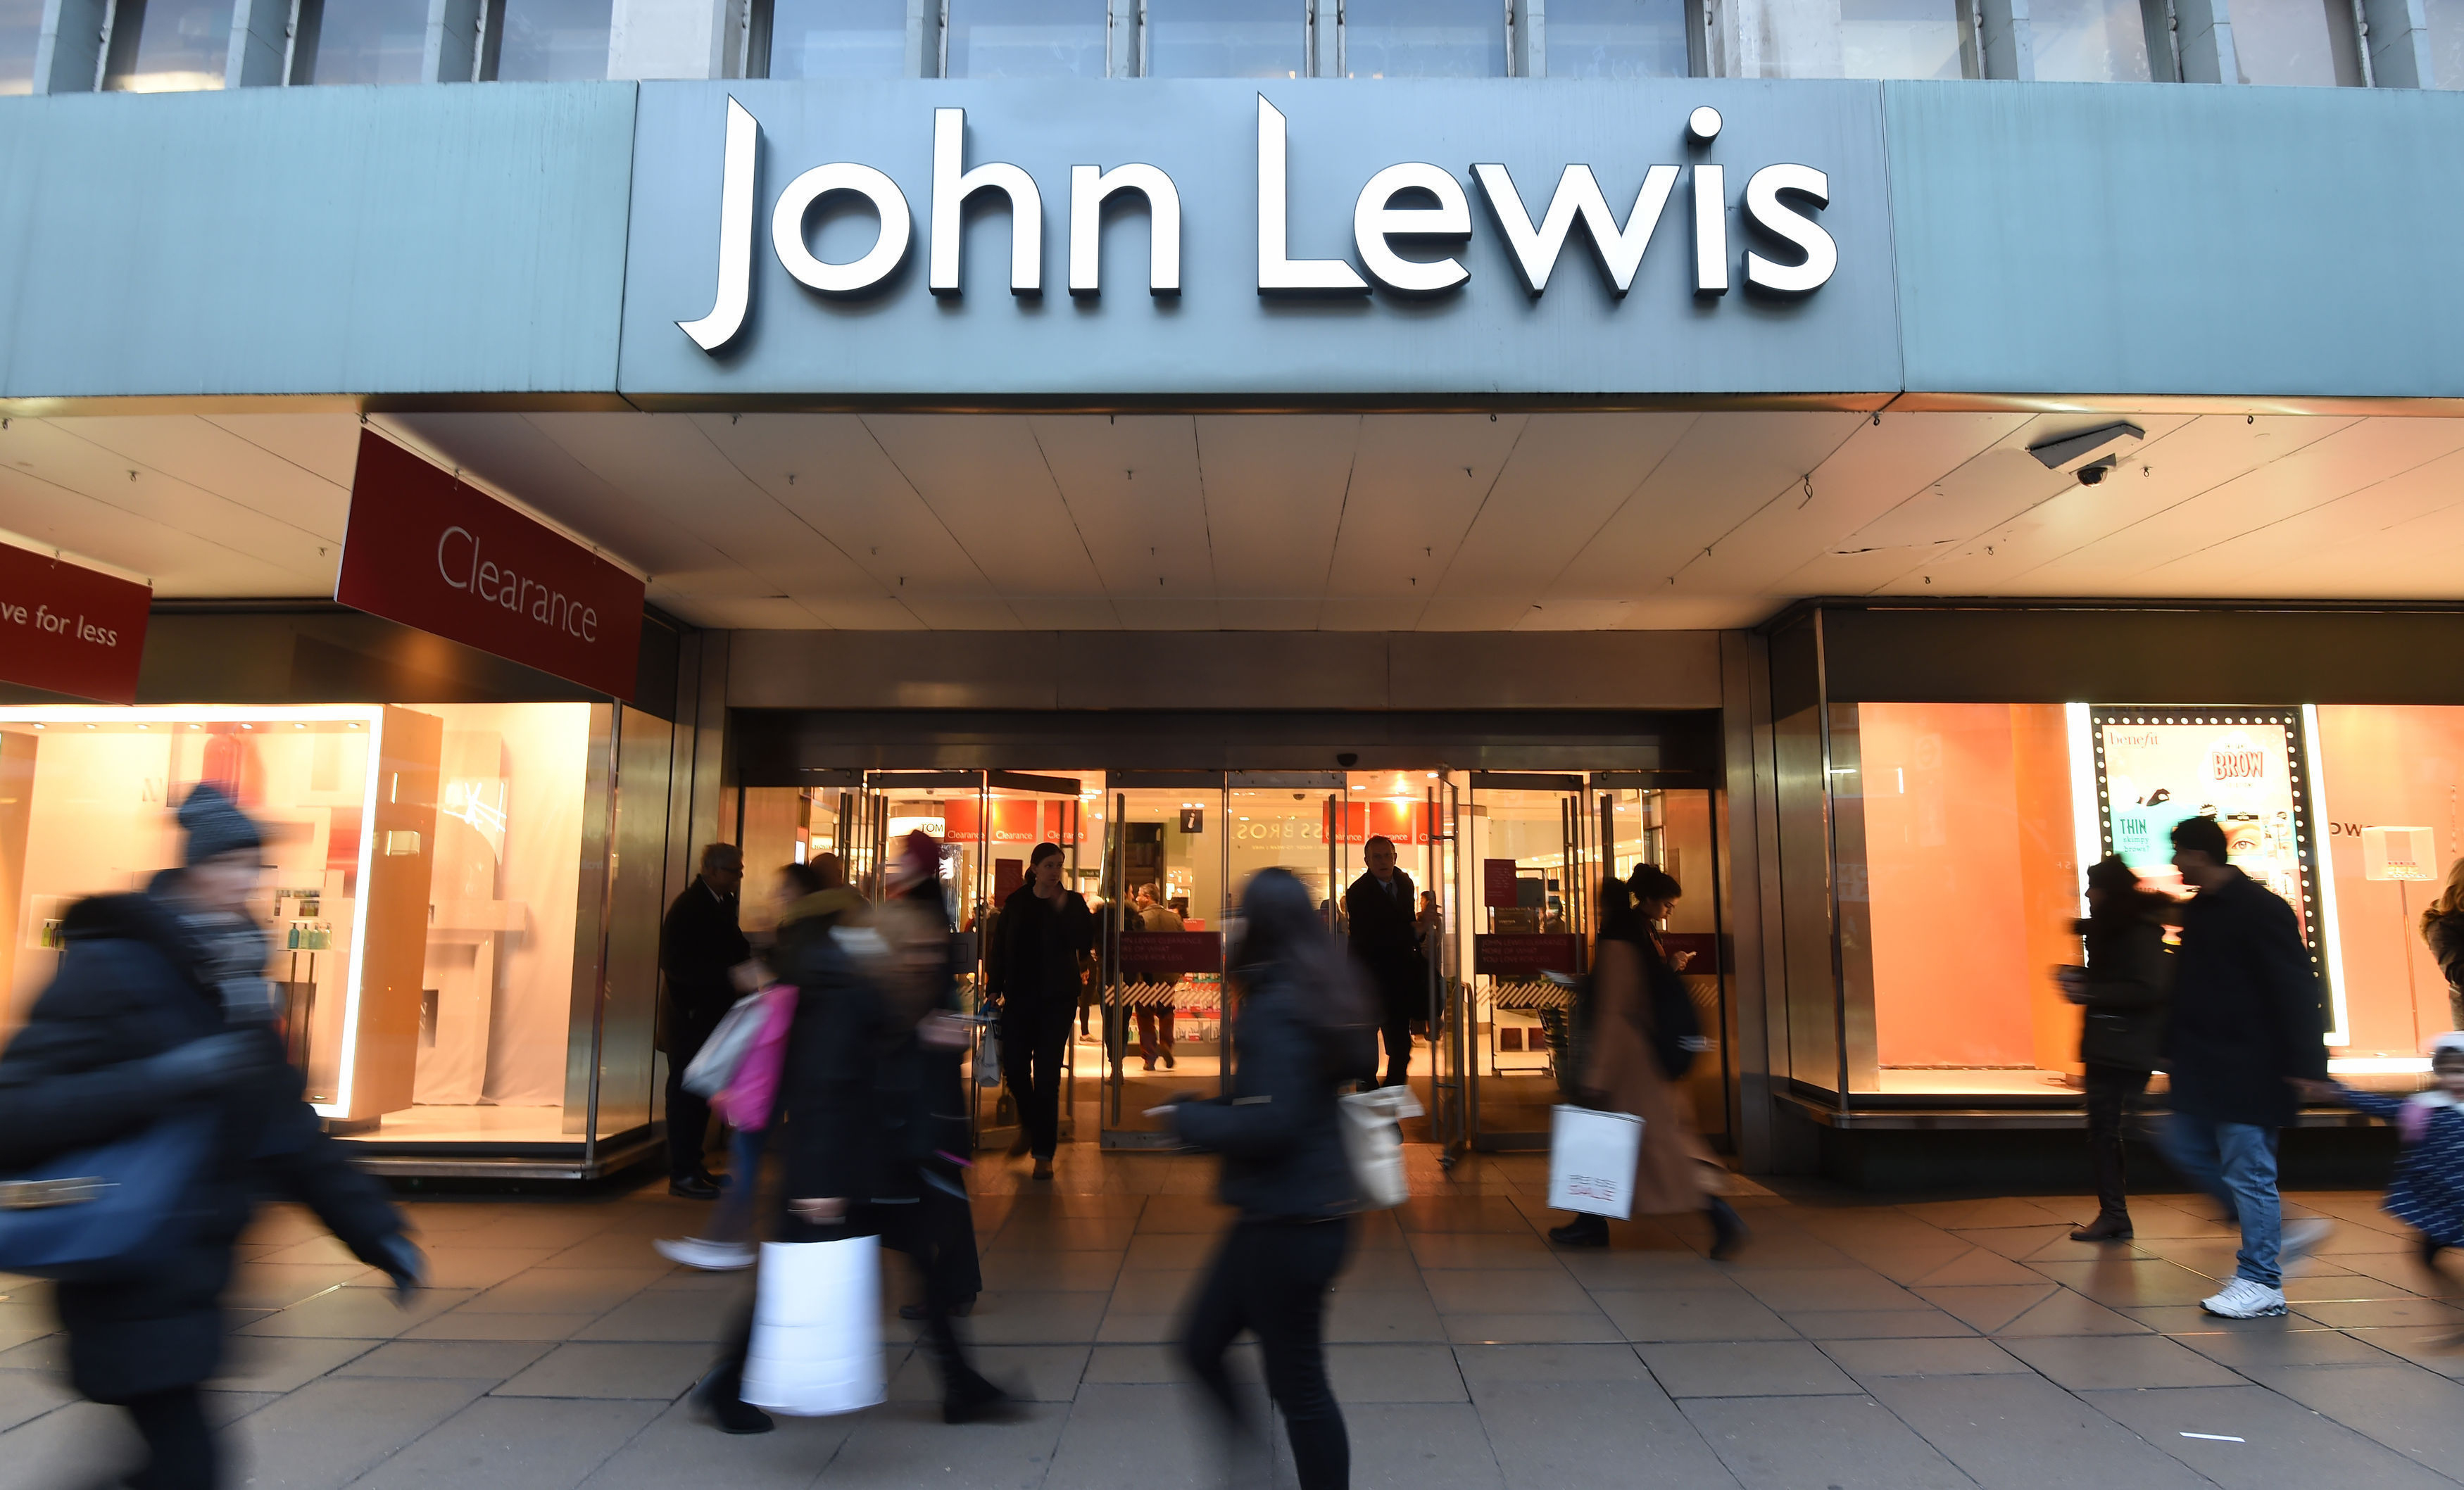 John Lewis has been named the best retailer in the UK to work for. (Charlotte Ball/PA Wire)